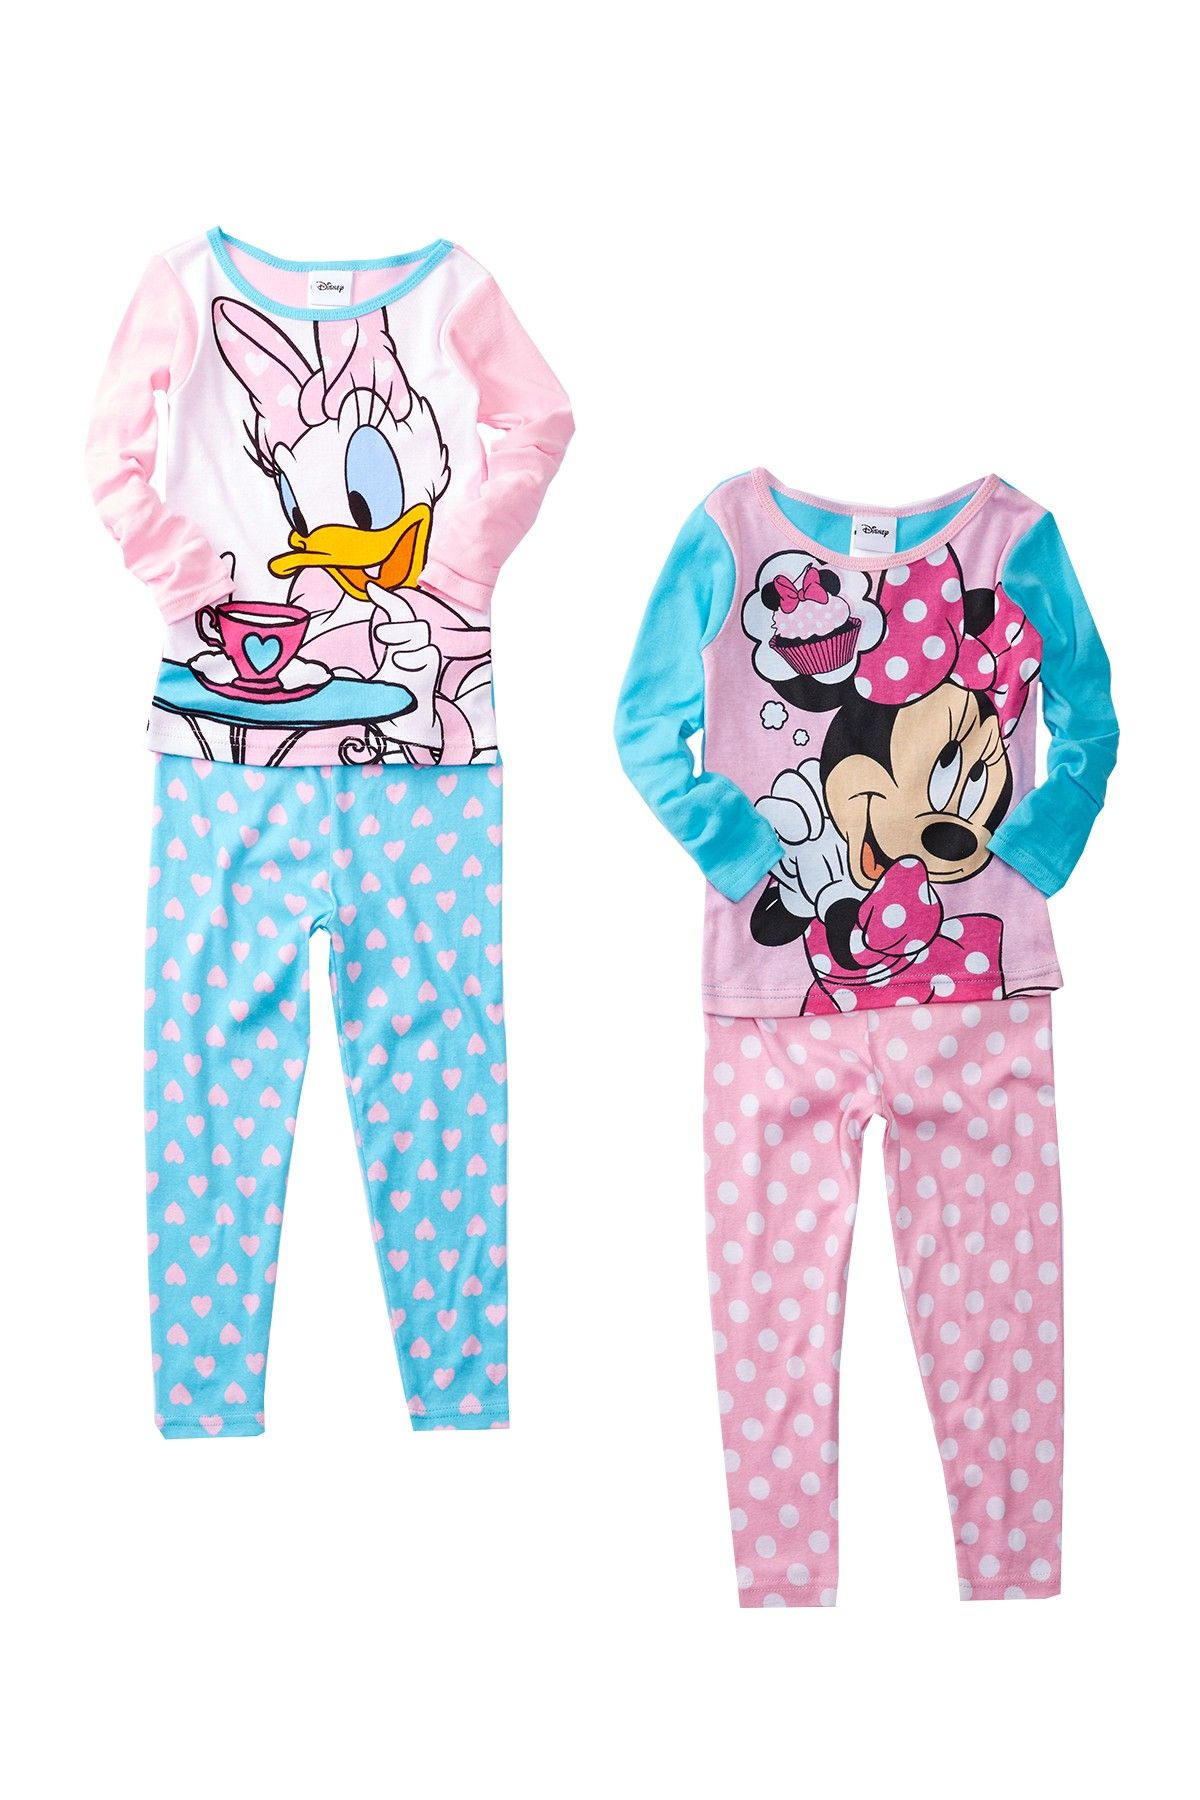 a69044c17 Minnie Mouse   Daisy Duck Cotton PJ s - Set of 2 (Toddler Girls) by ...